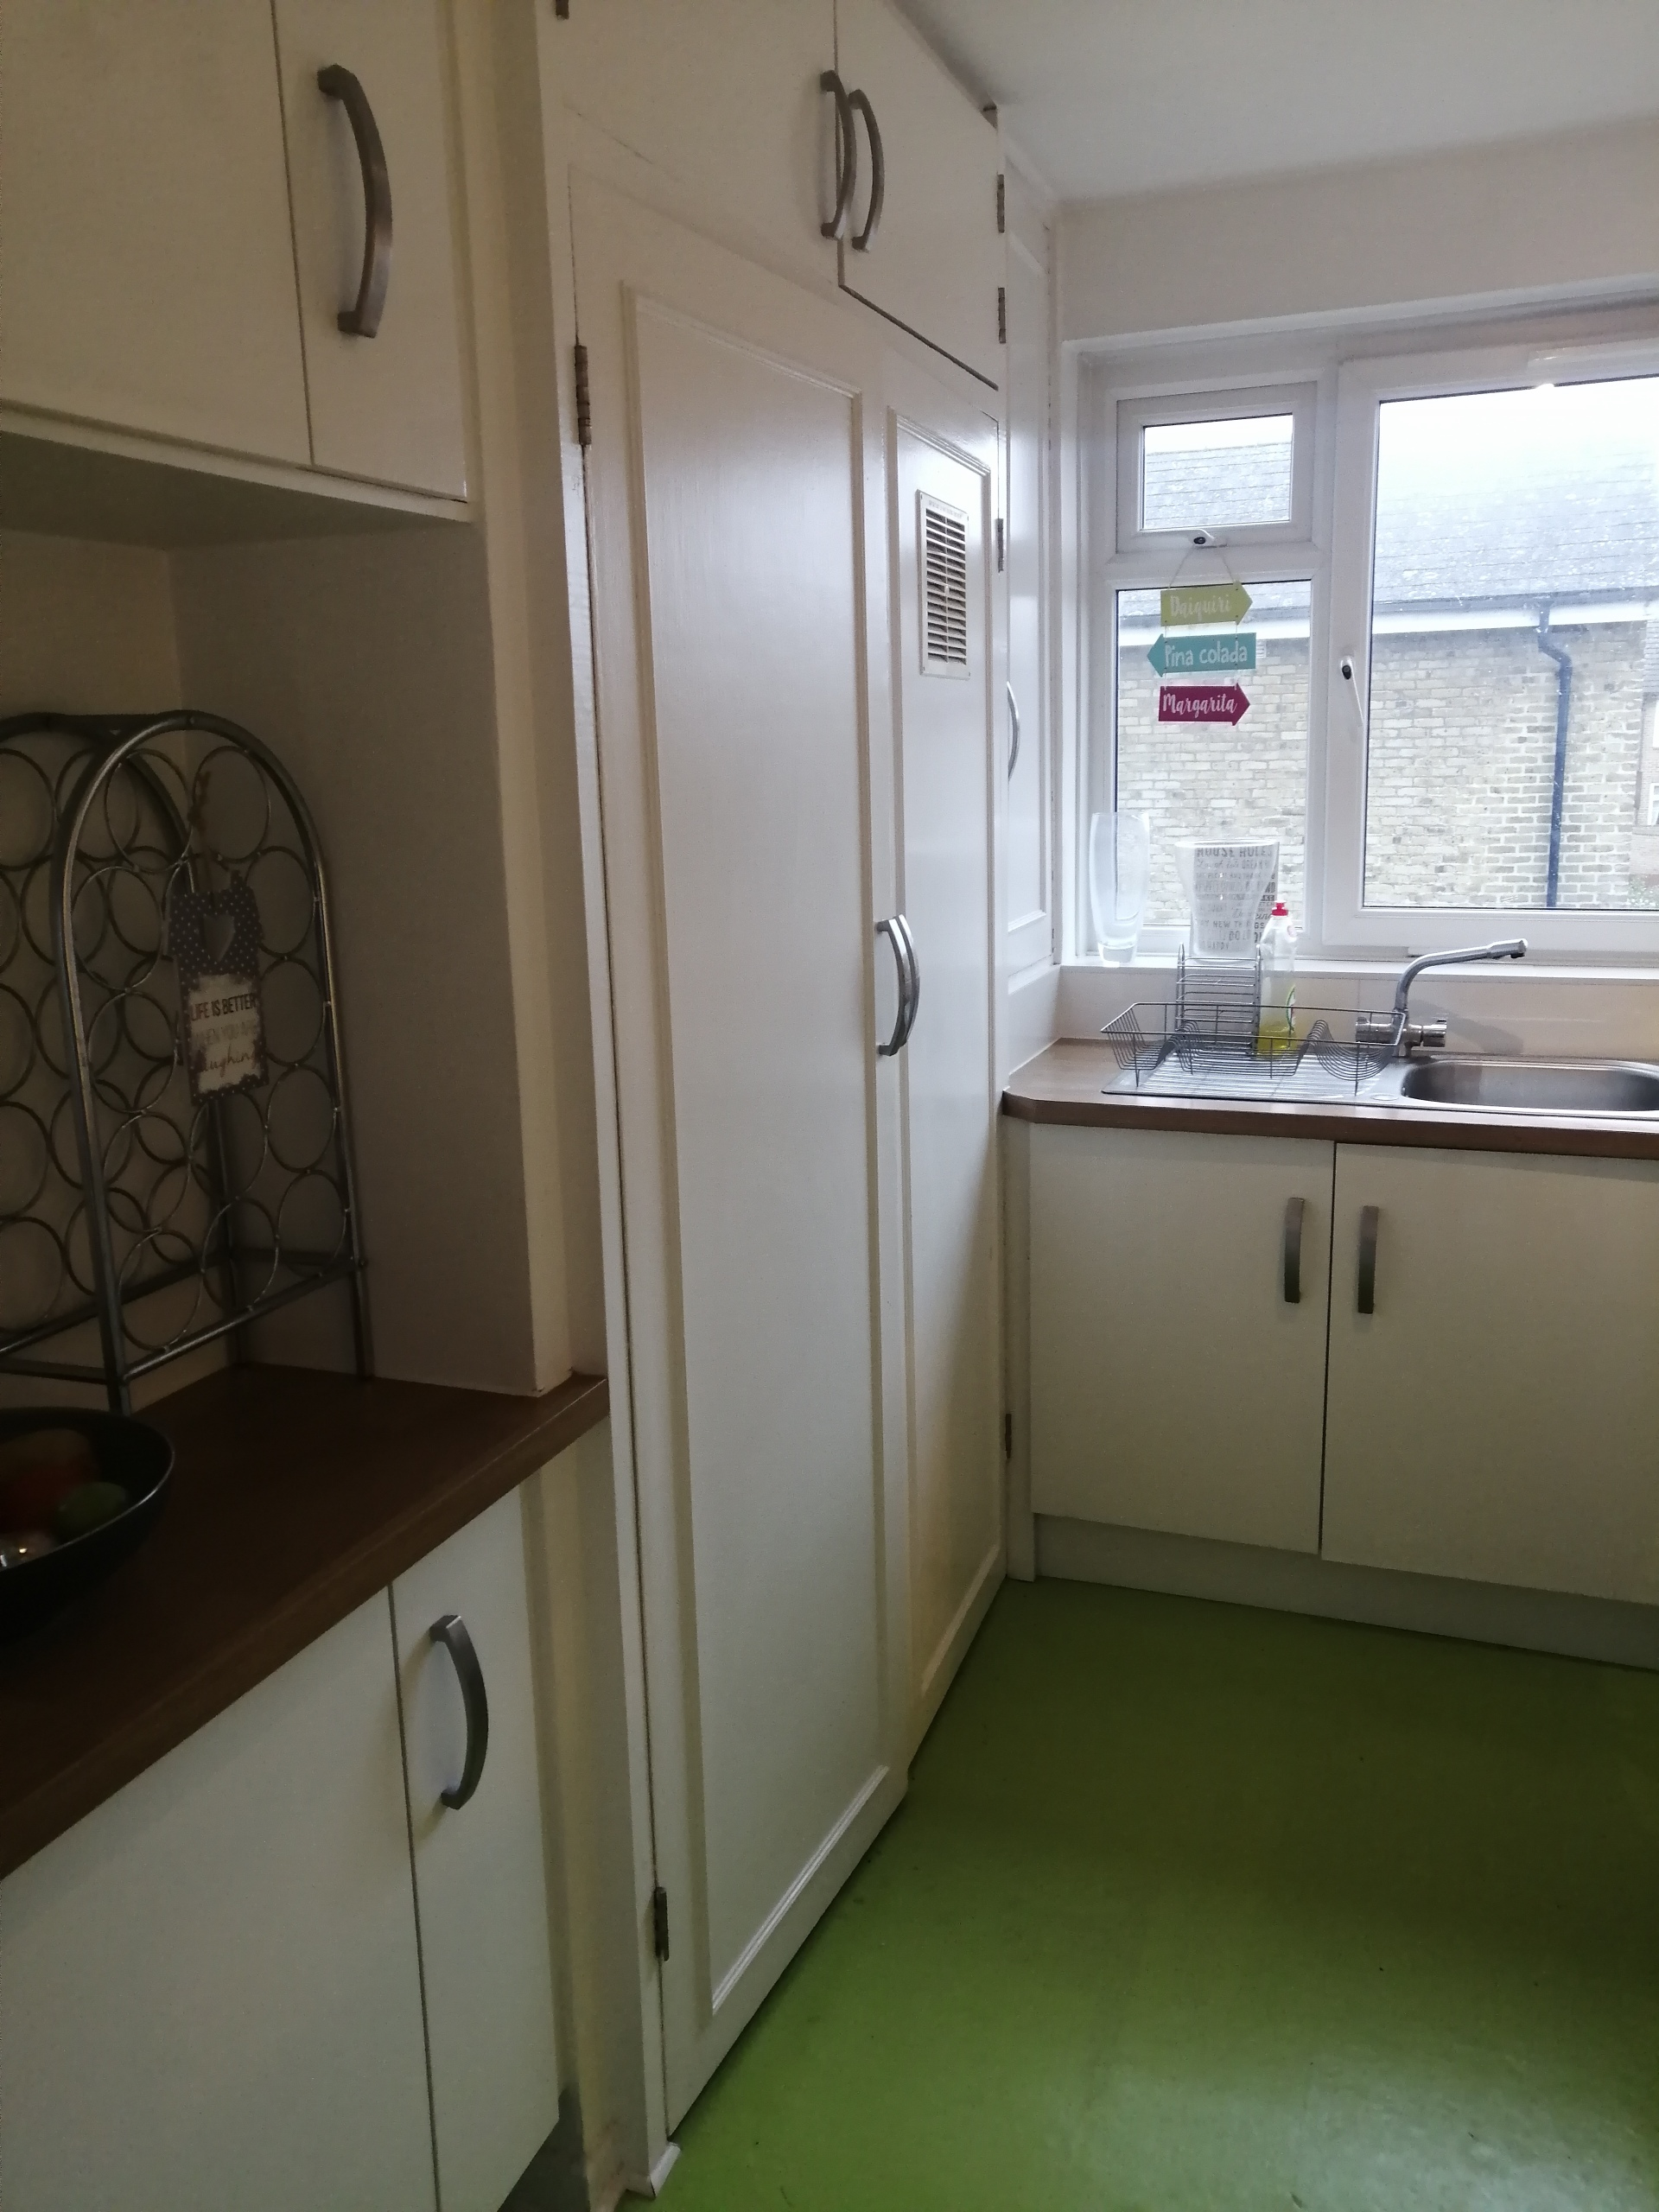 1 room in Vassall, Kennington, London, SE17 3NE RoomsLocal image